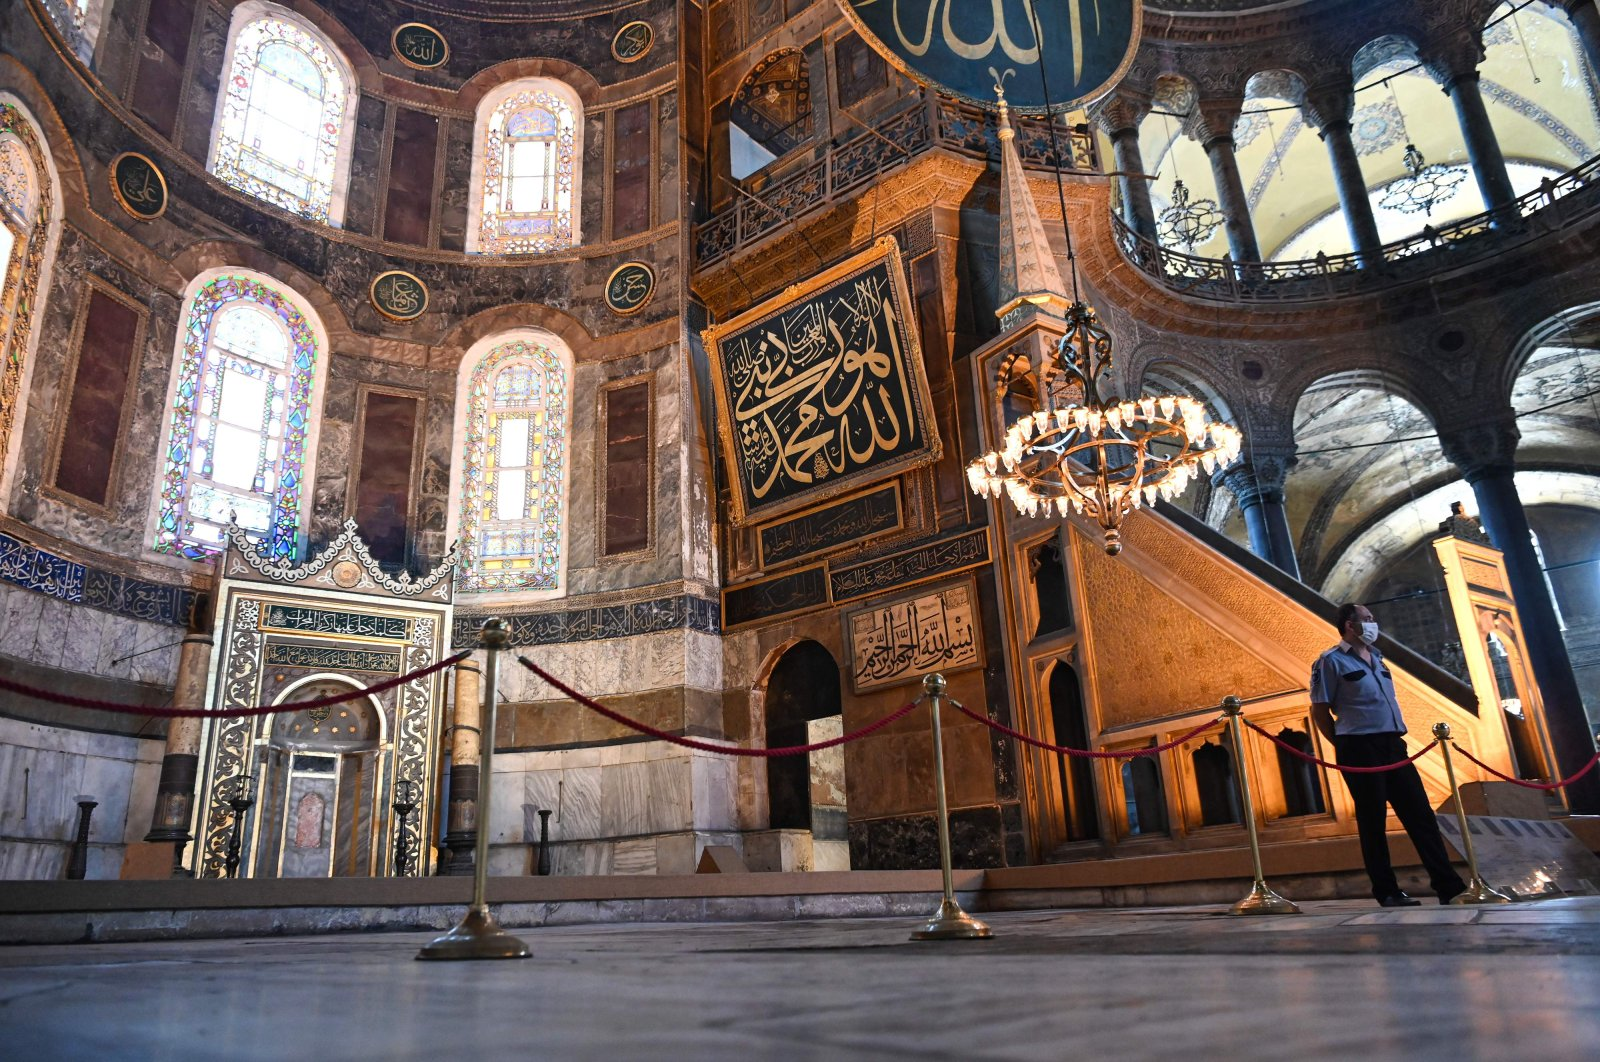 A security officer stands guard inside the Hagia Sophia Museum, Istanbul, Turkey, July 2, 2020. (AFP Photo)